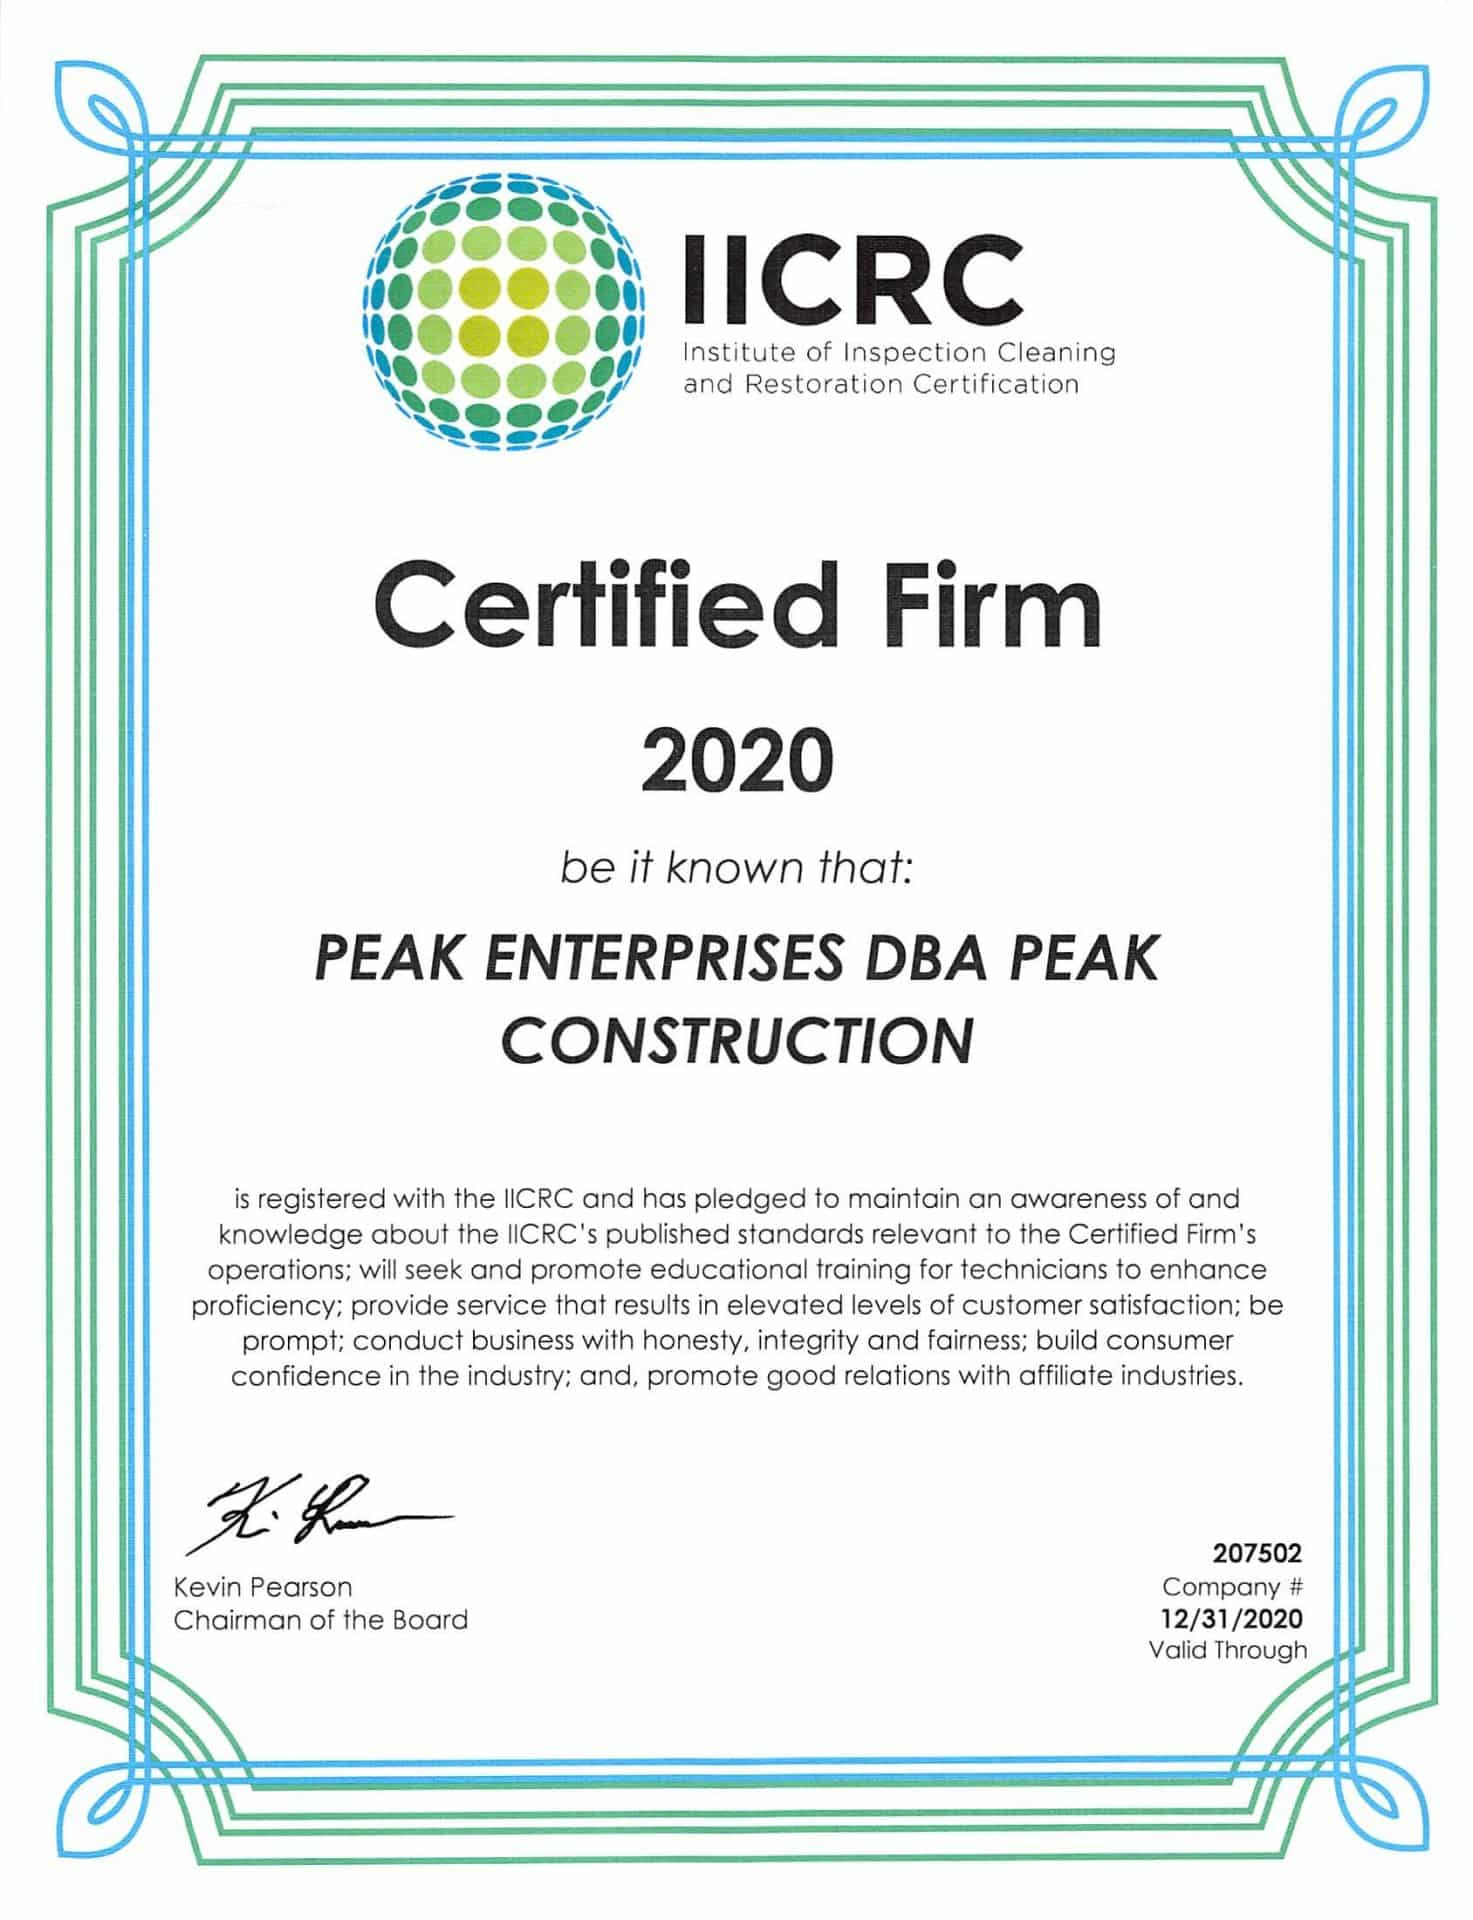 IICRC Certified Peak Construction | General Contractor